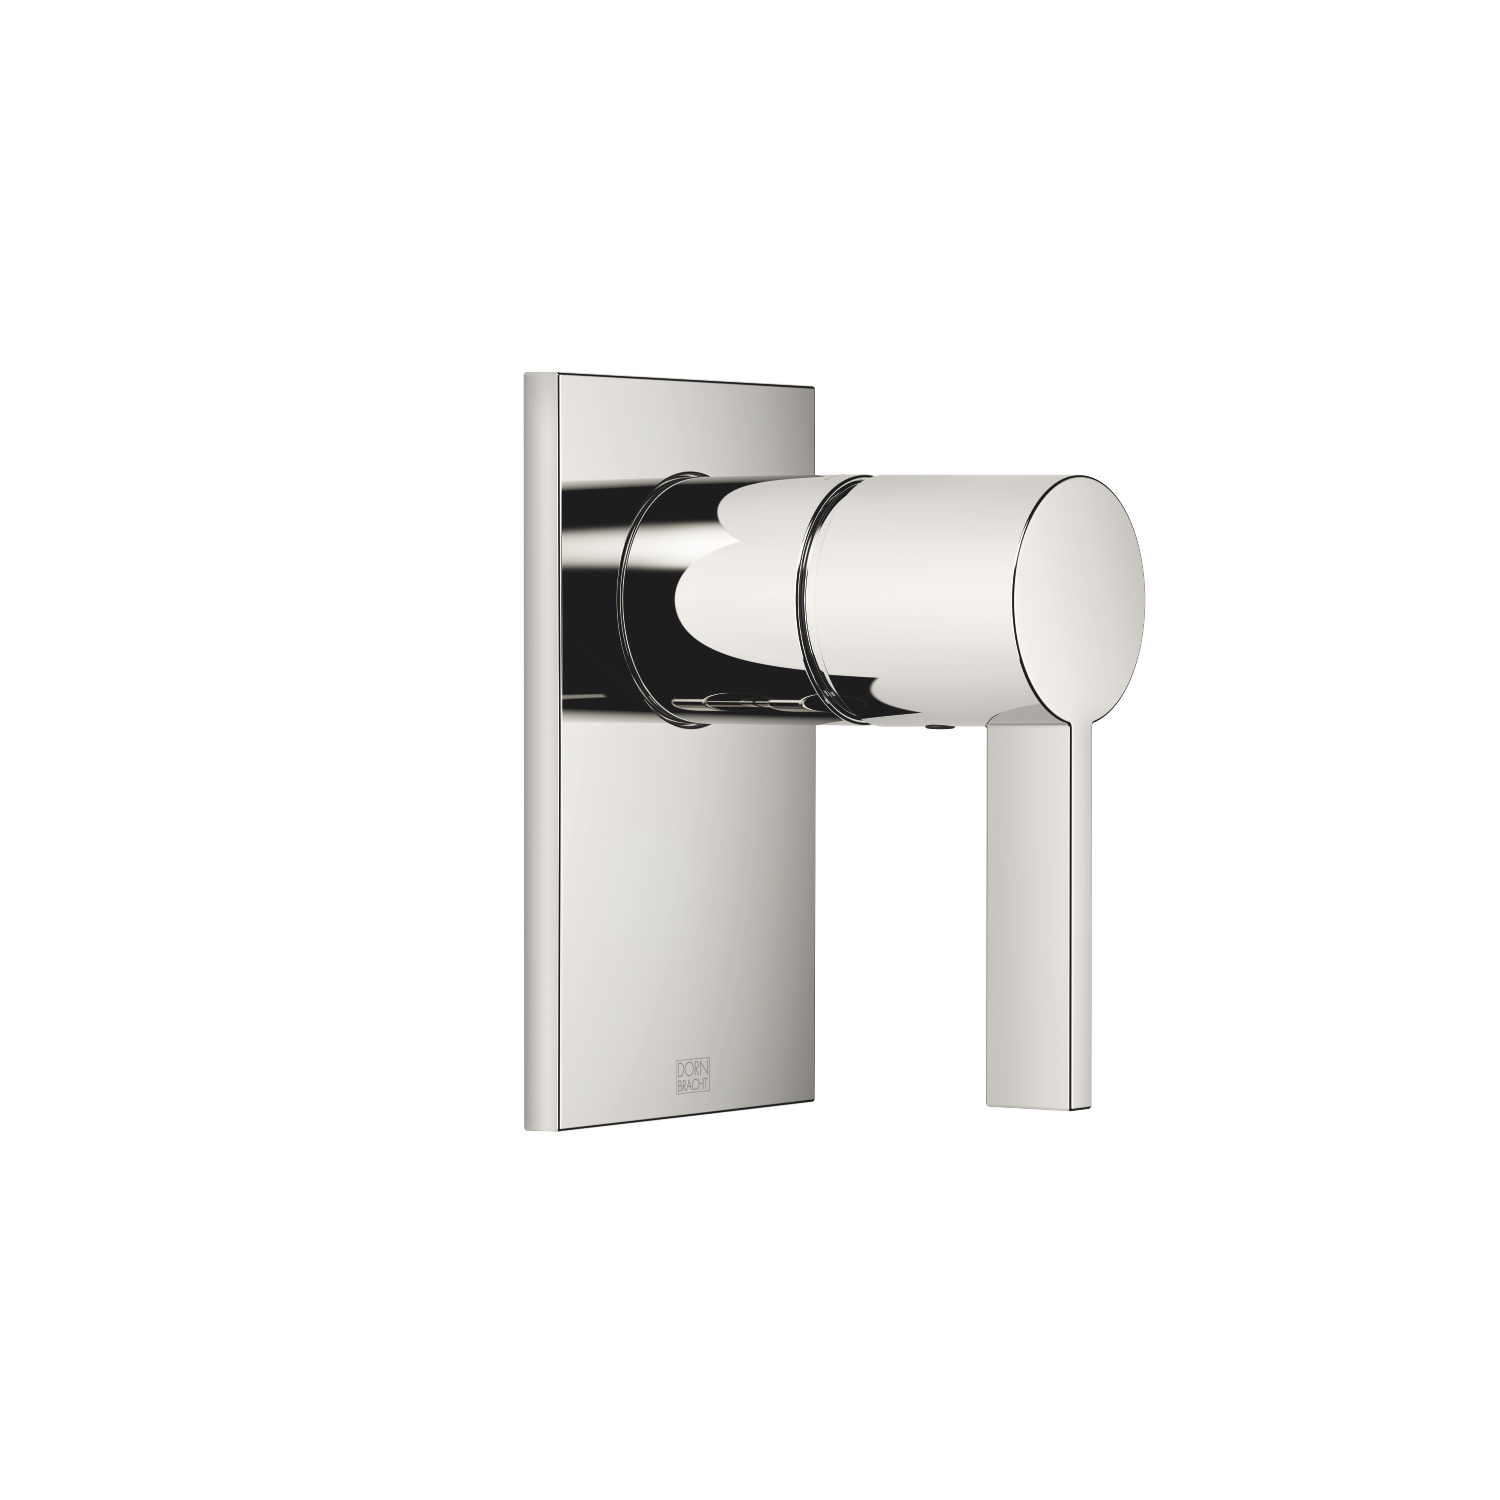 Concealed single-lever mixer without diverter - platinum - 36 022 782-08